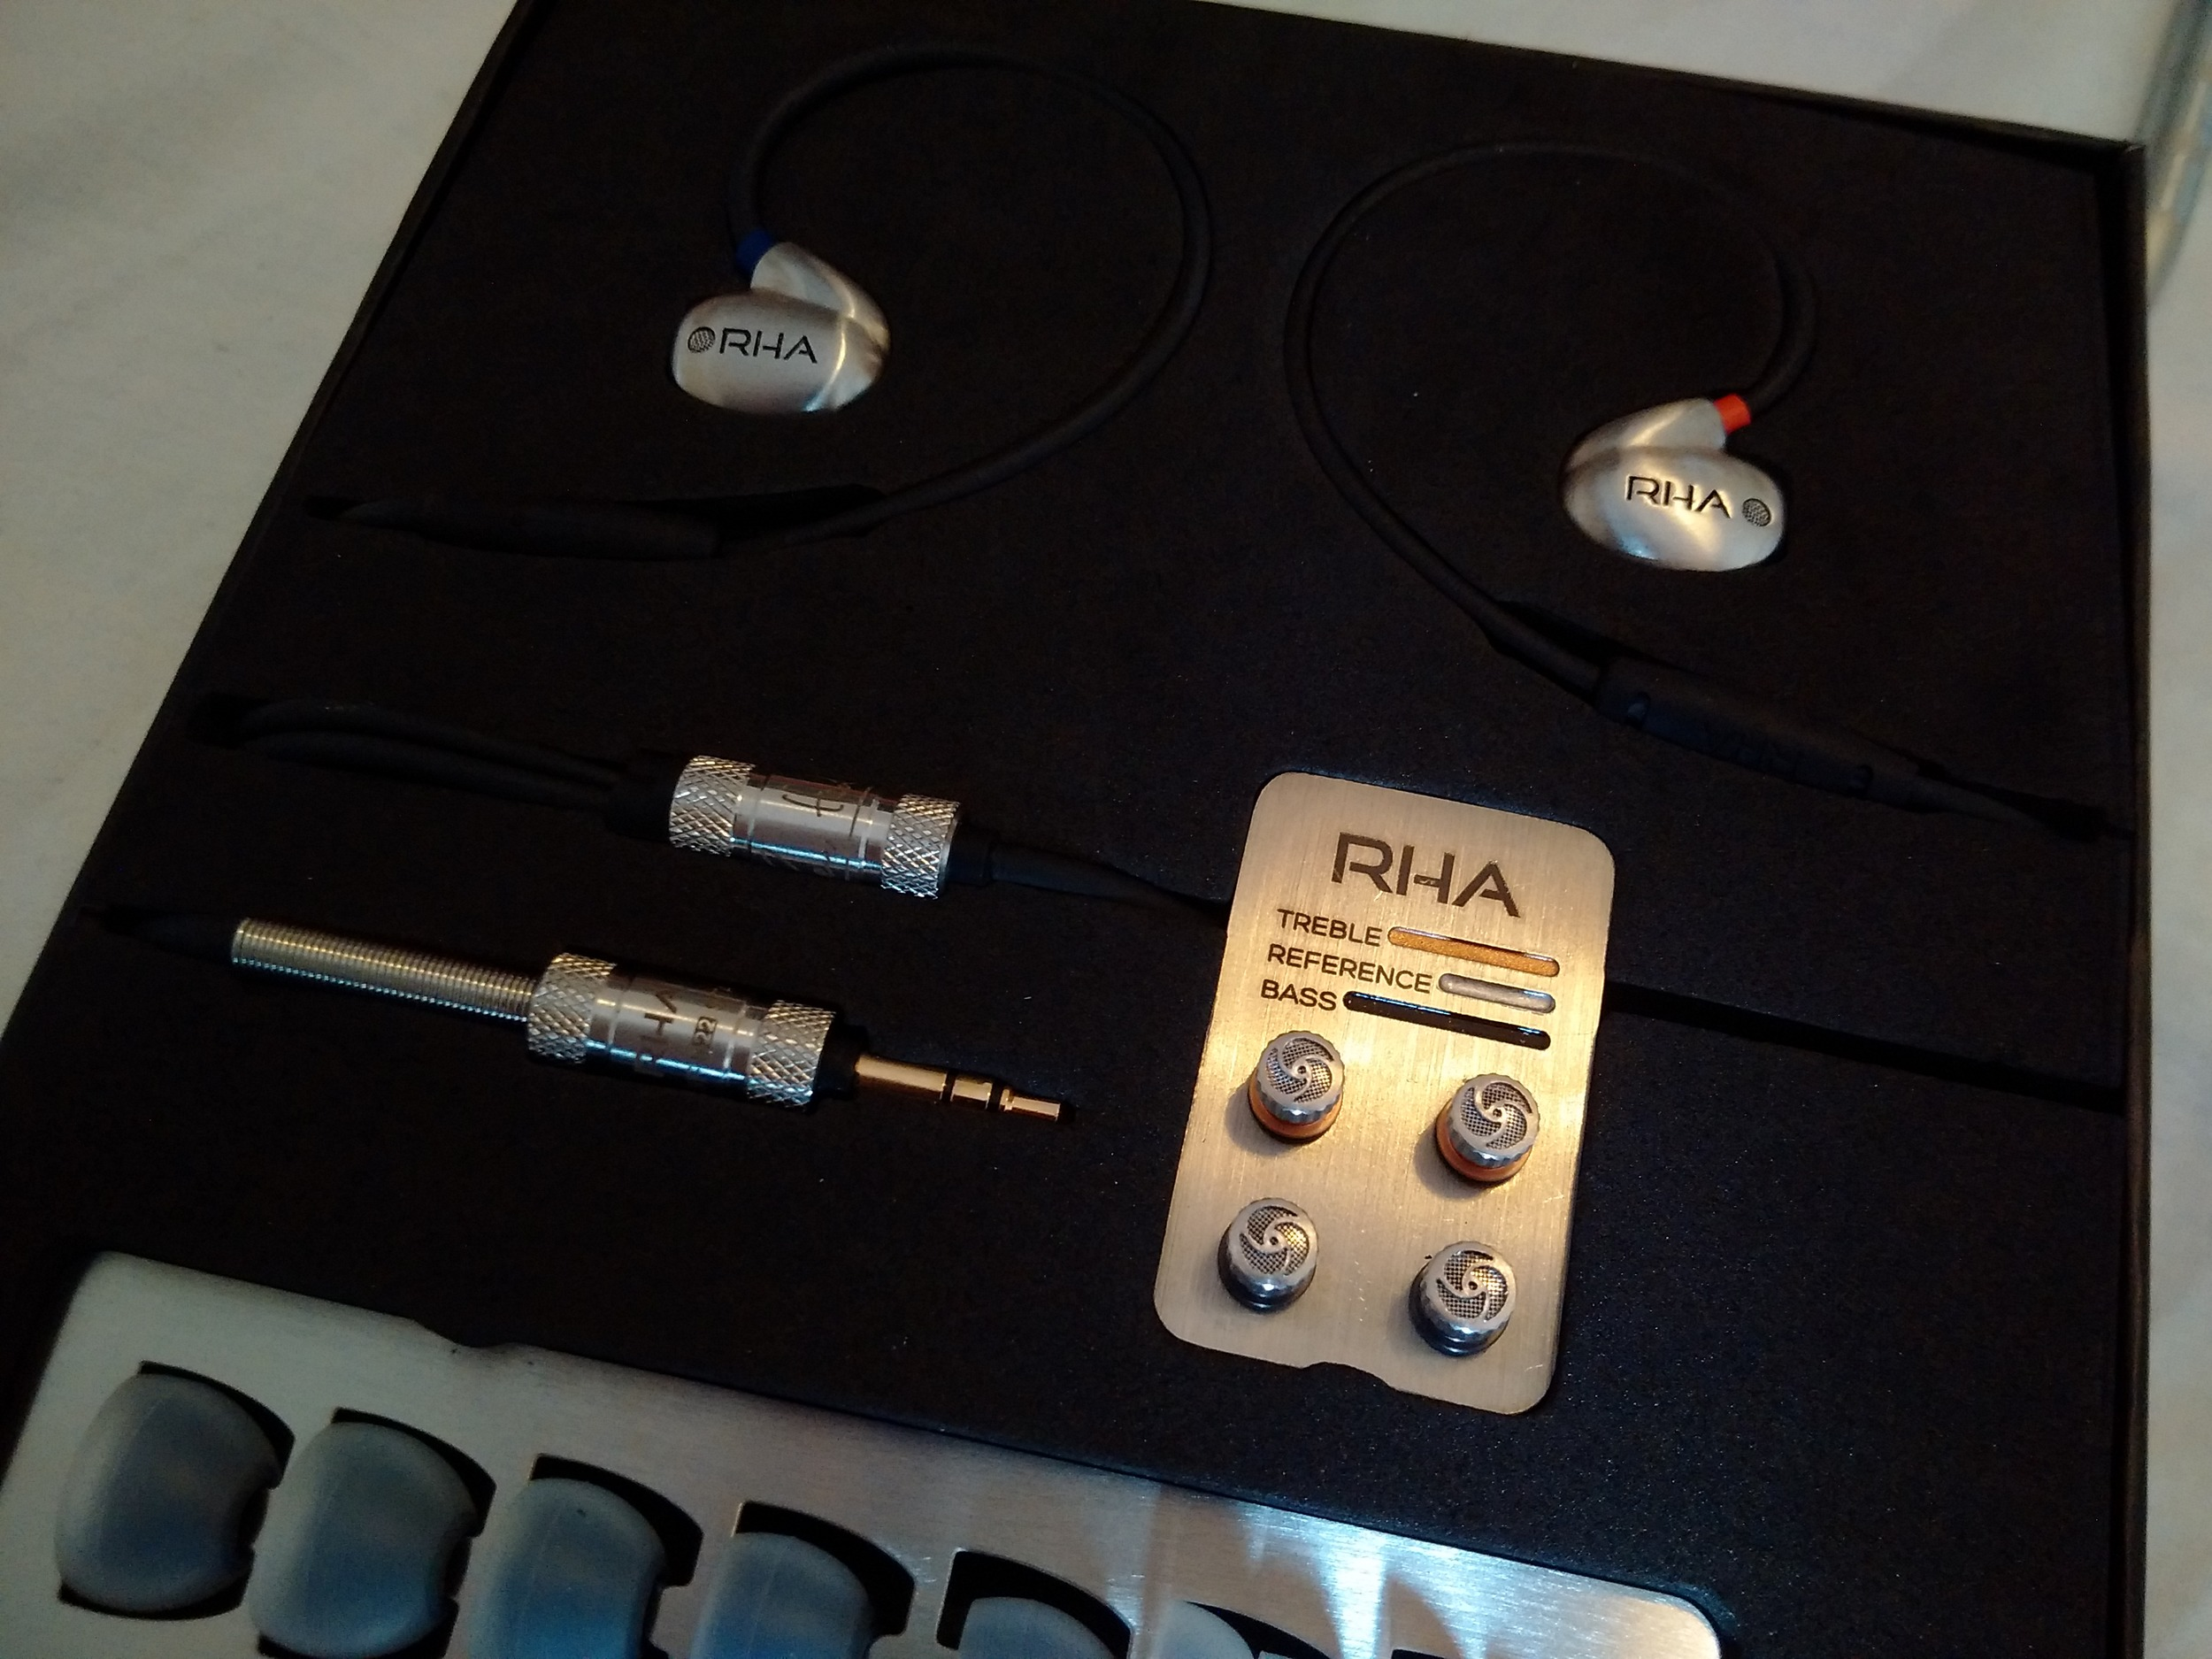 RHA T20 Review -Excellent packaging and accessories.